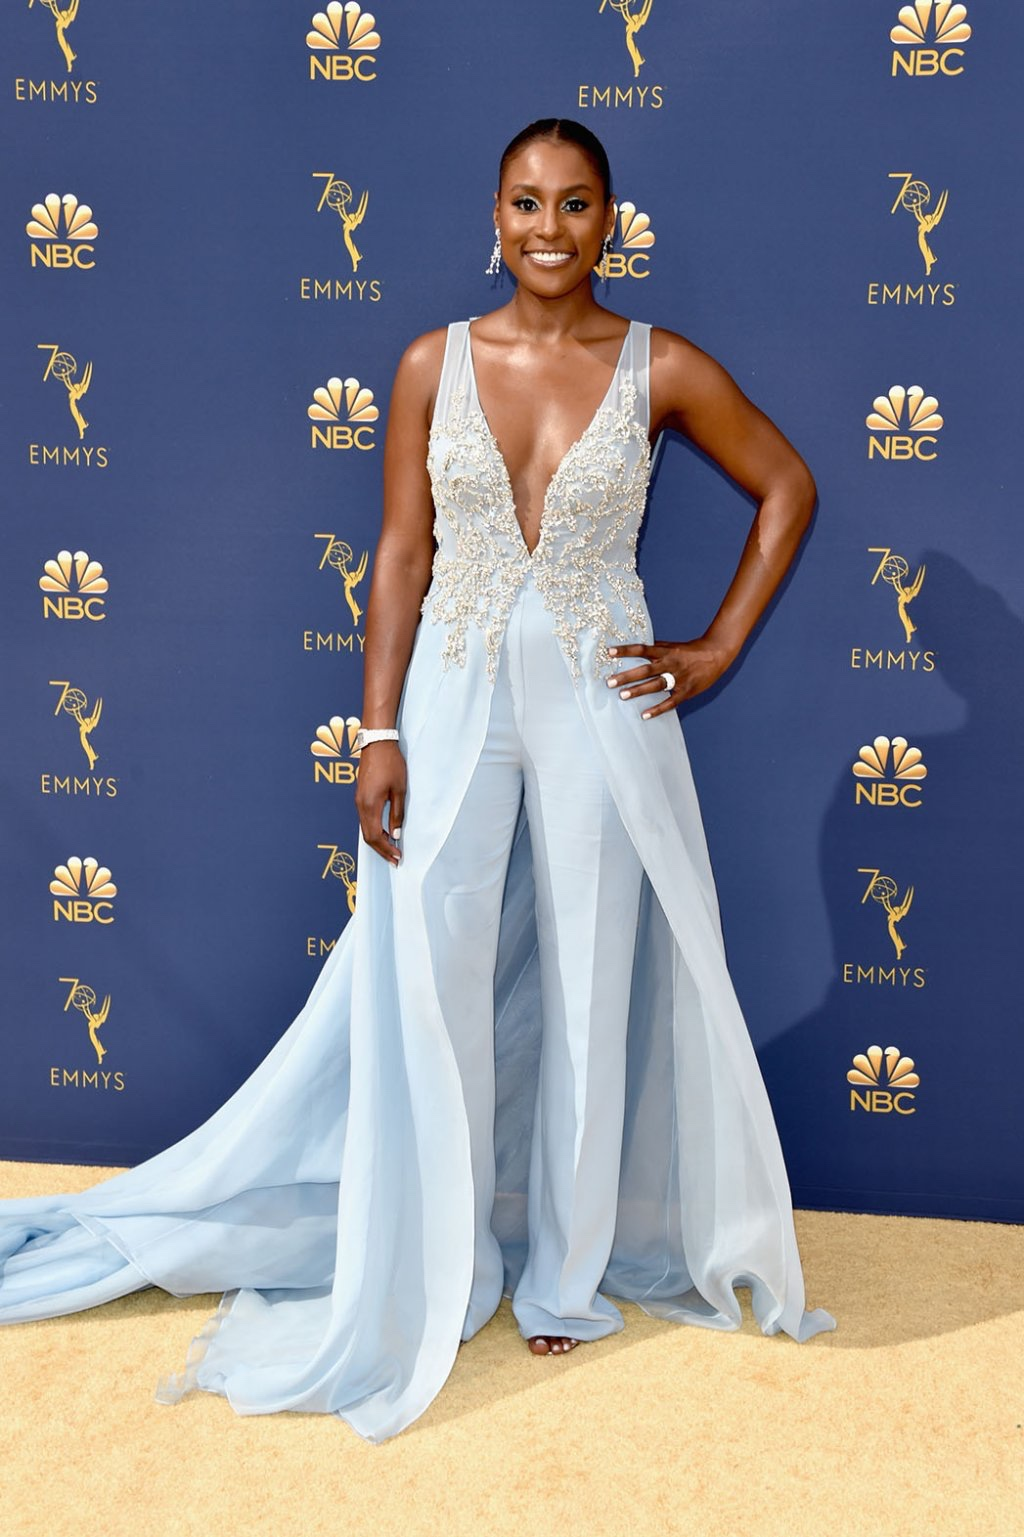 Issa Rae in Vera Wang, 70th Annual Primetime Emmy Awards, Betty White, Emmys 2018, Fashion, Featured, Glenn Weiss, Hannah Gadsby, highlights, Jav Svendsen, Online Exclusive, Style, The Marvellous Mrs. Maisel, top moments, We solved it, Diversity